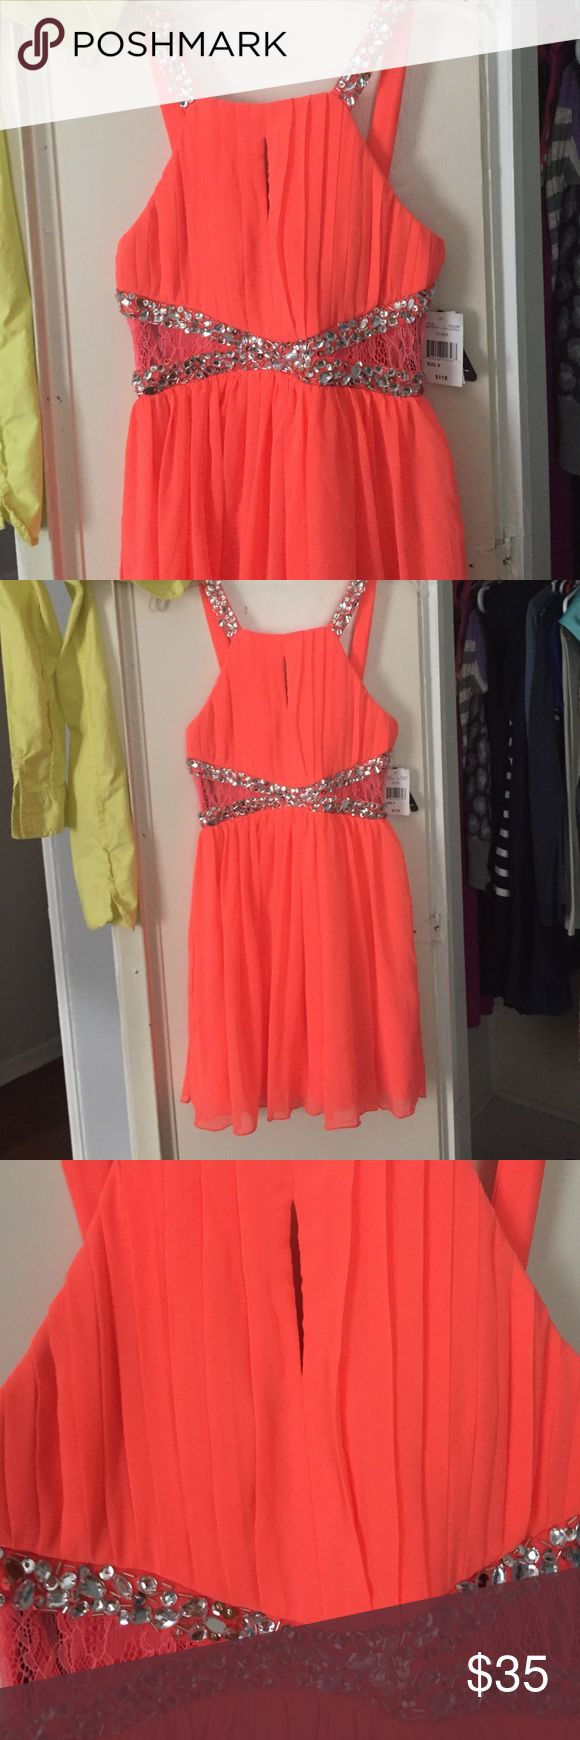 Teen Summer dress Bright orange with mesh cuts in the sides. Rhinestones on straps and under bust. Flowy and fun! Wore once in excellent condition! City Triangles Dresses Mini